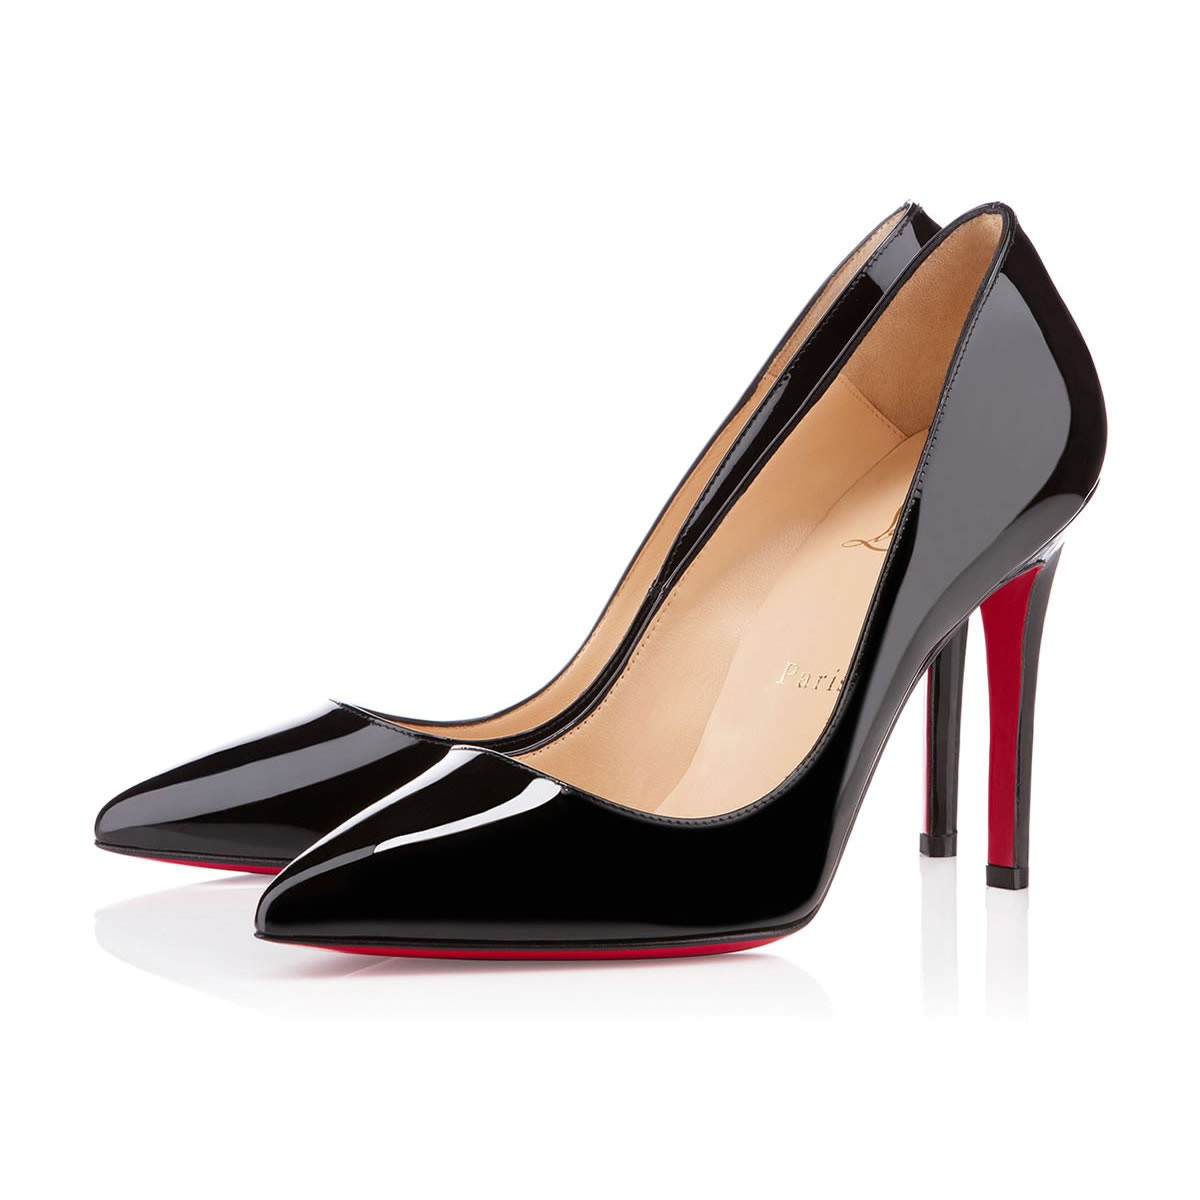 fantastic savings classic styles vast selection PIGALLE 100 BLACK PATENT - Women Shoes - Christian Louboutin